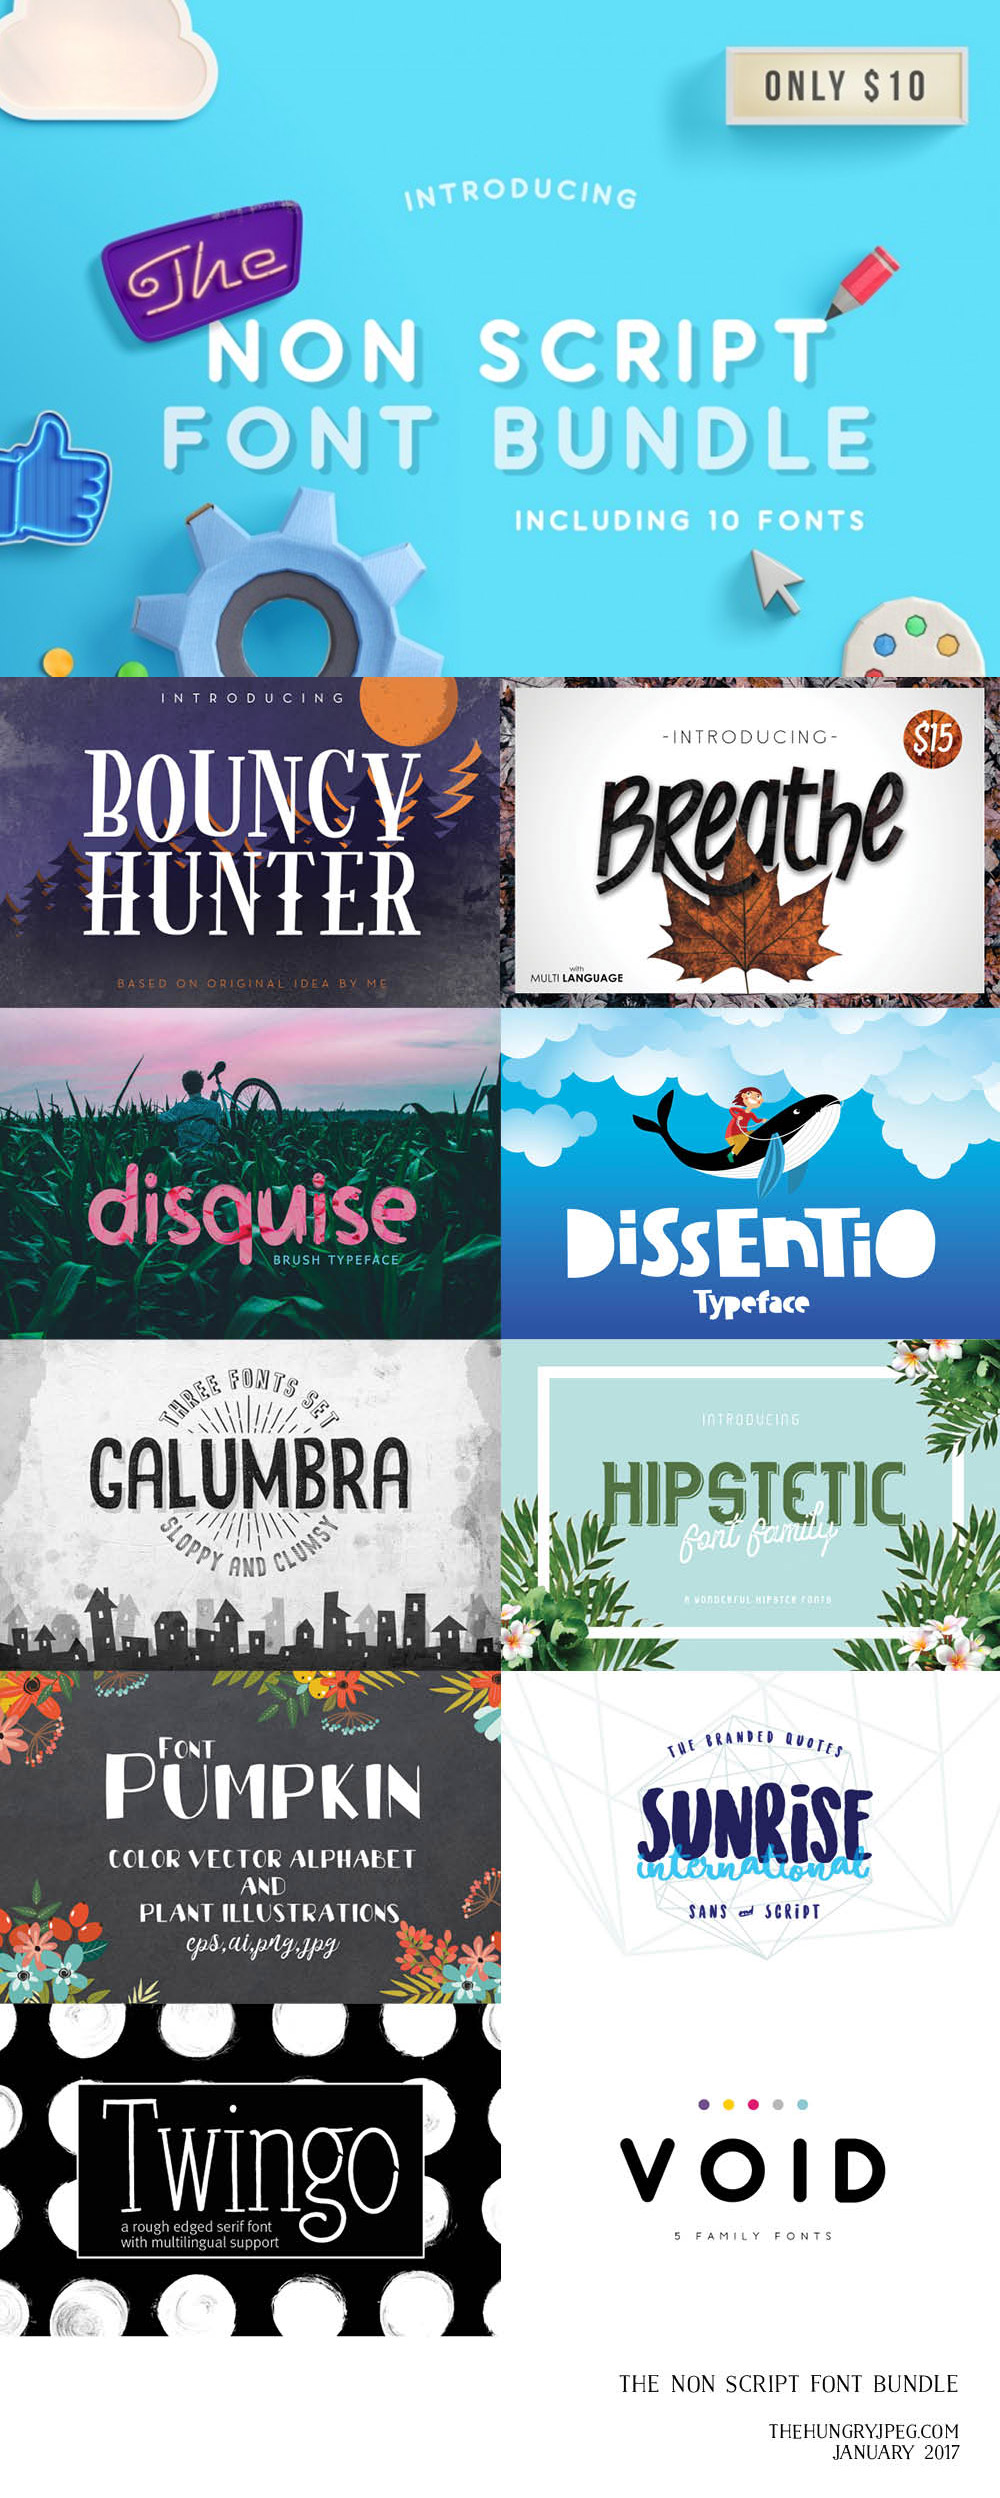 The Non-Script Fonts Bundle